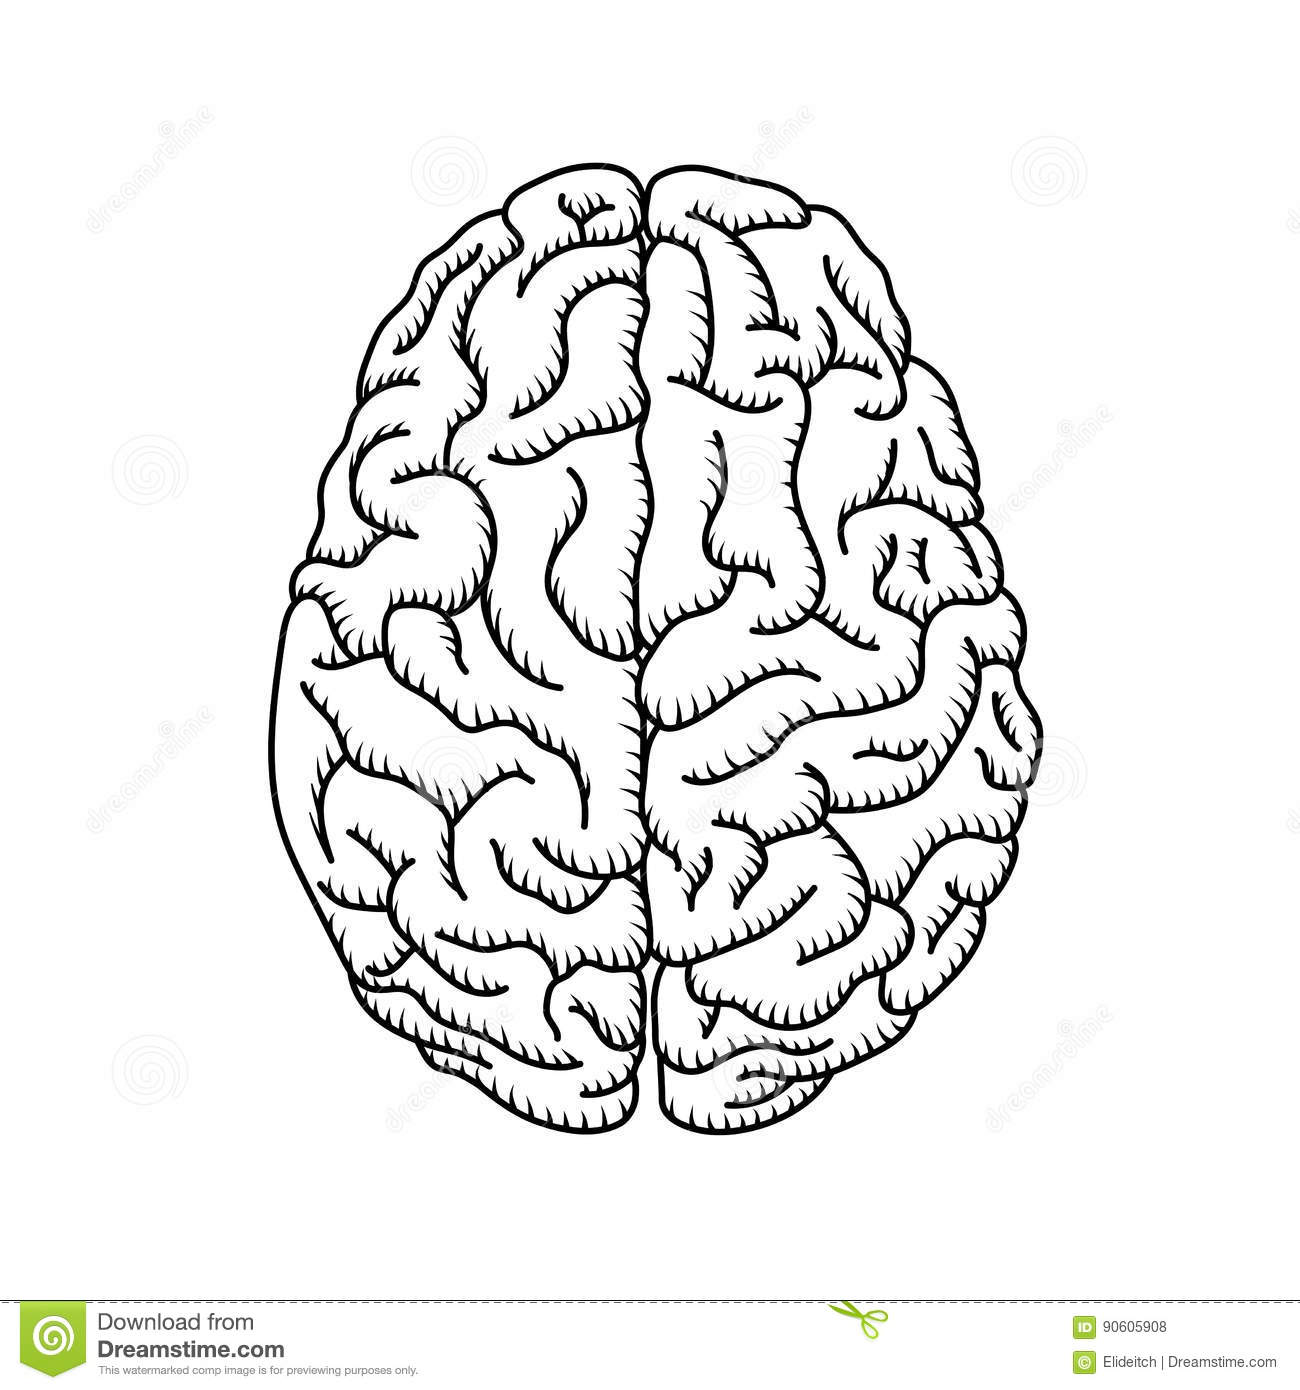 brain function stock photos illustrations and vector art